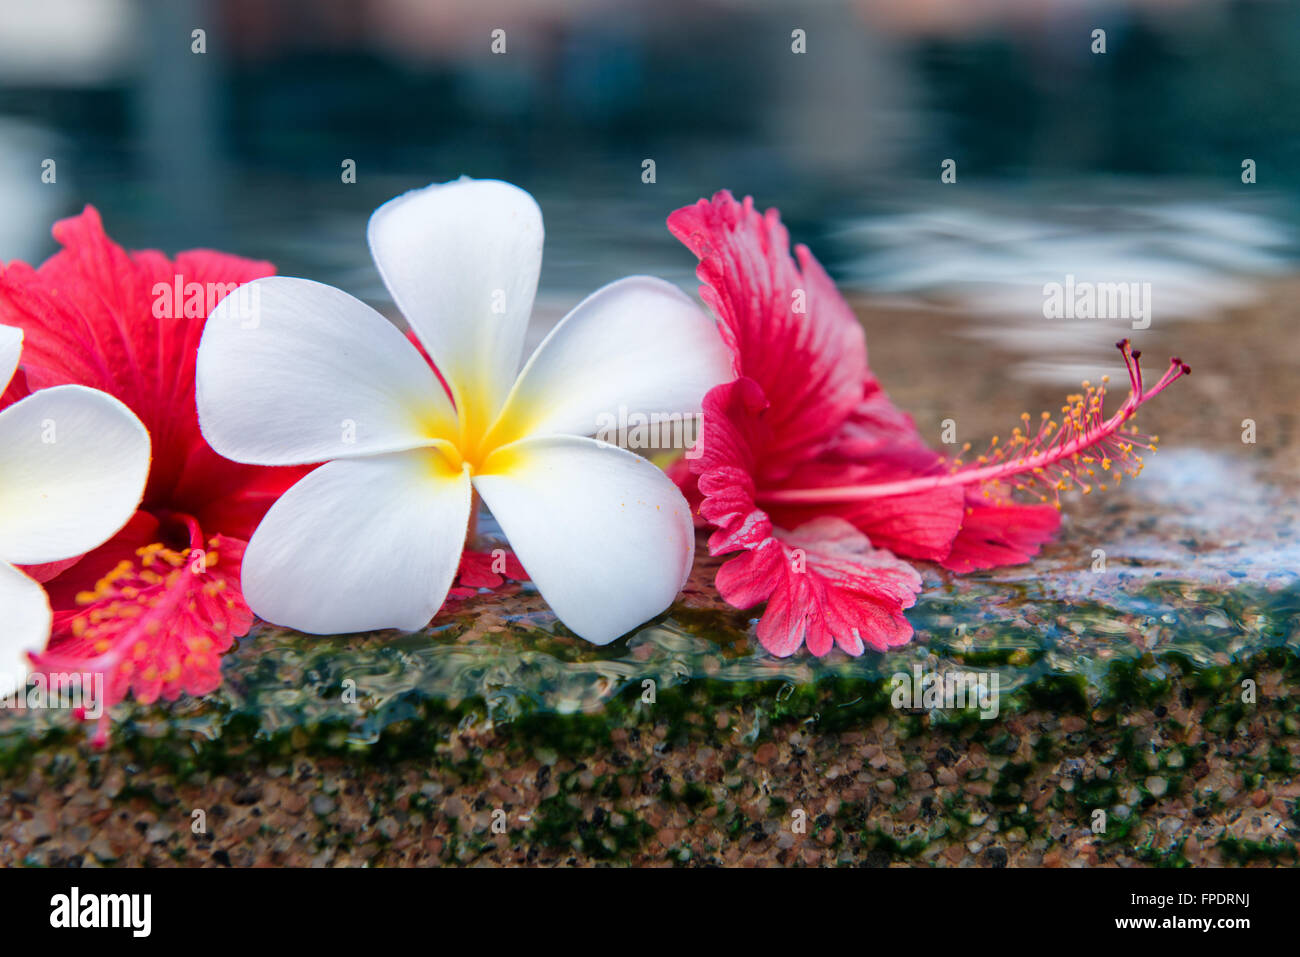 Hibiscus And Plumeria Flowers Stock Photos Hibiscus And Plumeria